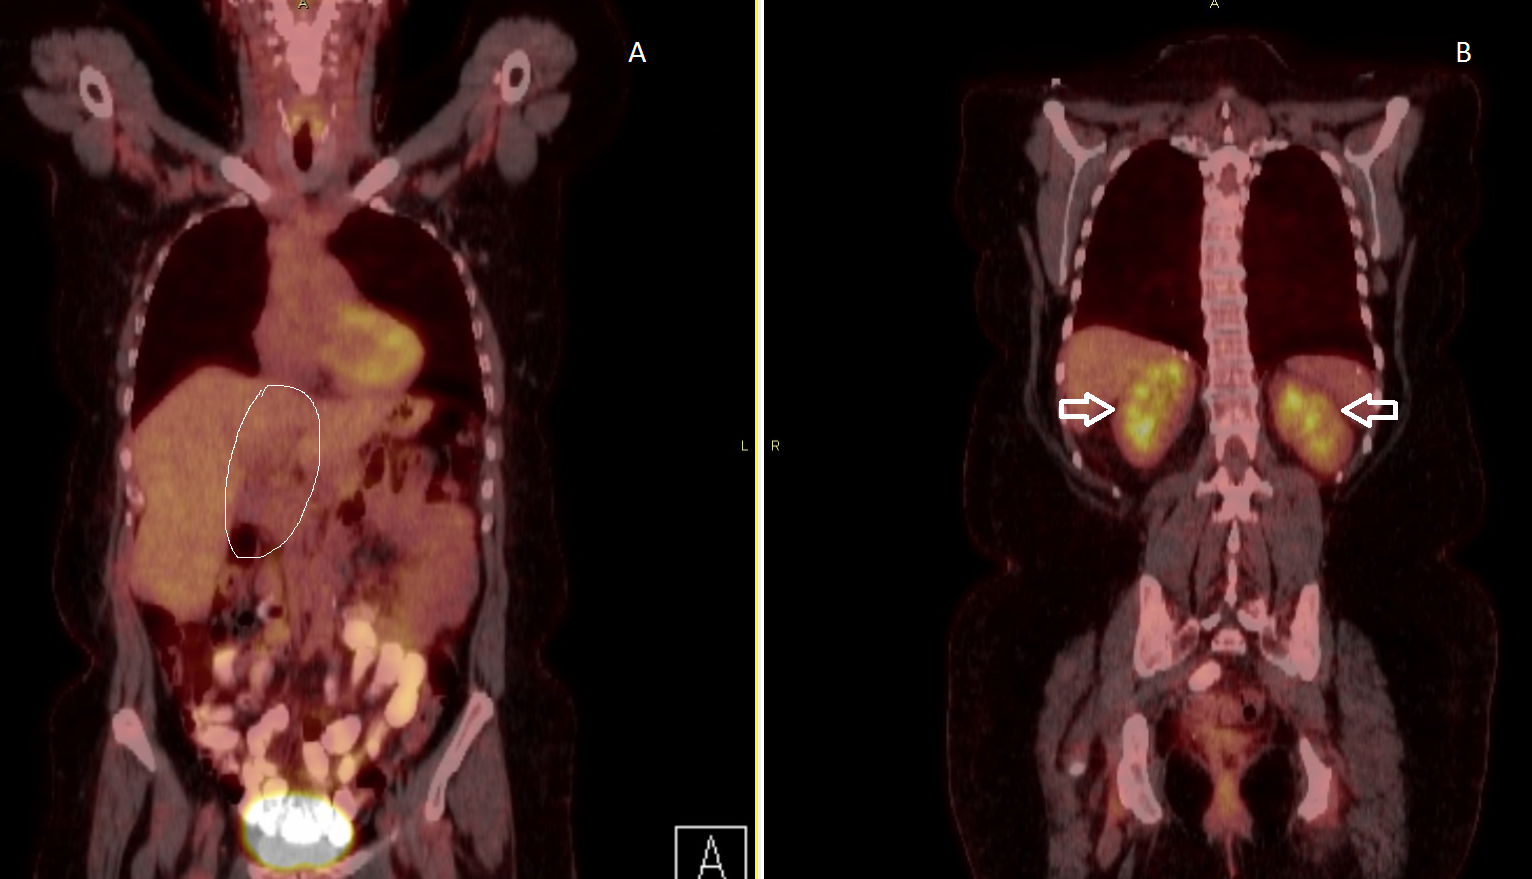 Cureus | Large Unilateral Adrenal Mass with Surrounding Brown Fat: A ...